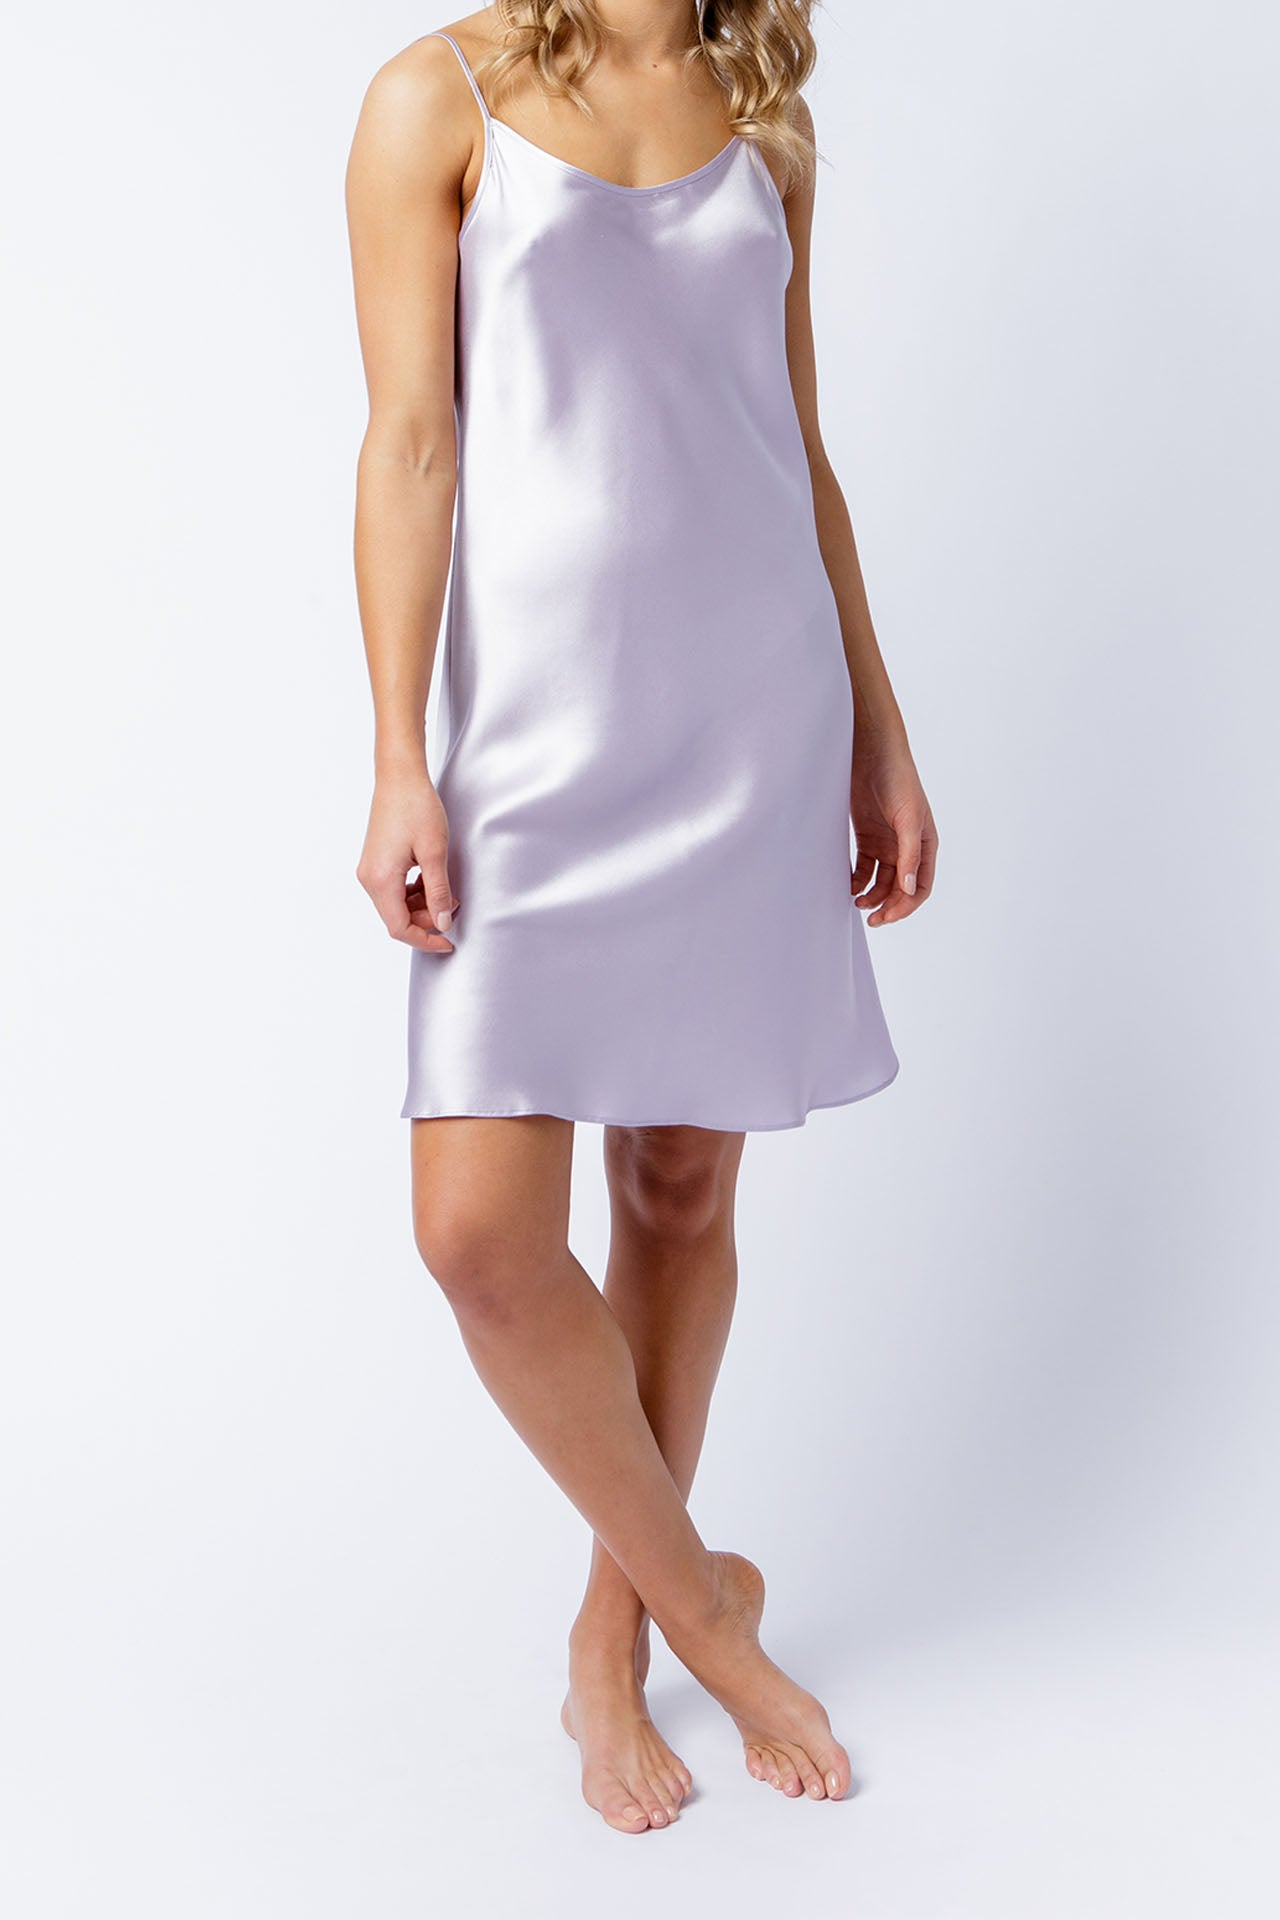 Estella slip dress in orchid, front